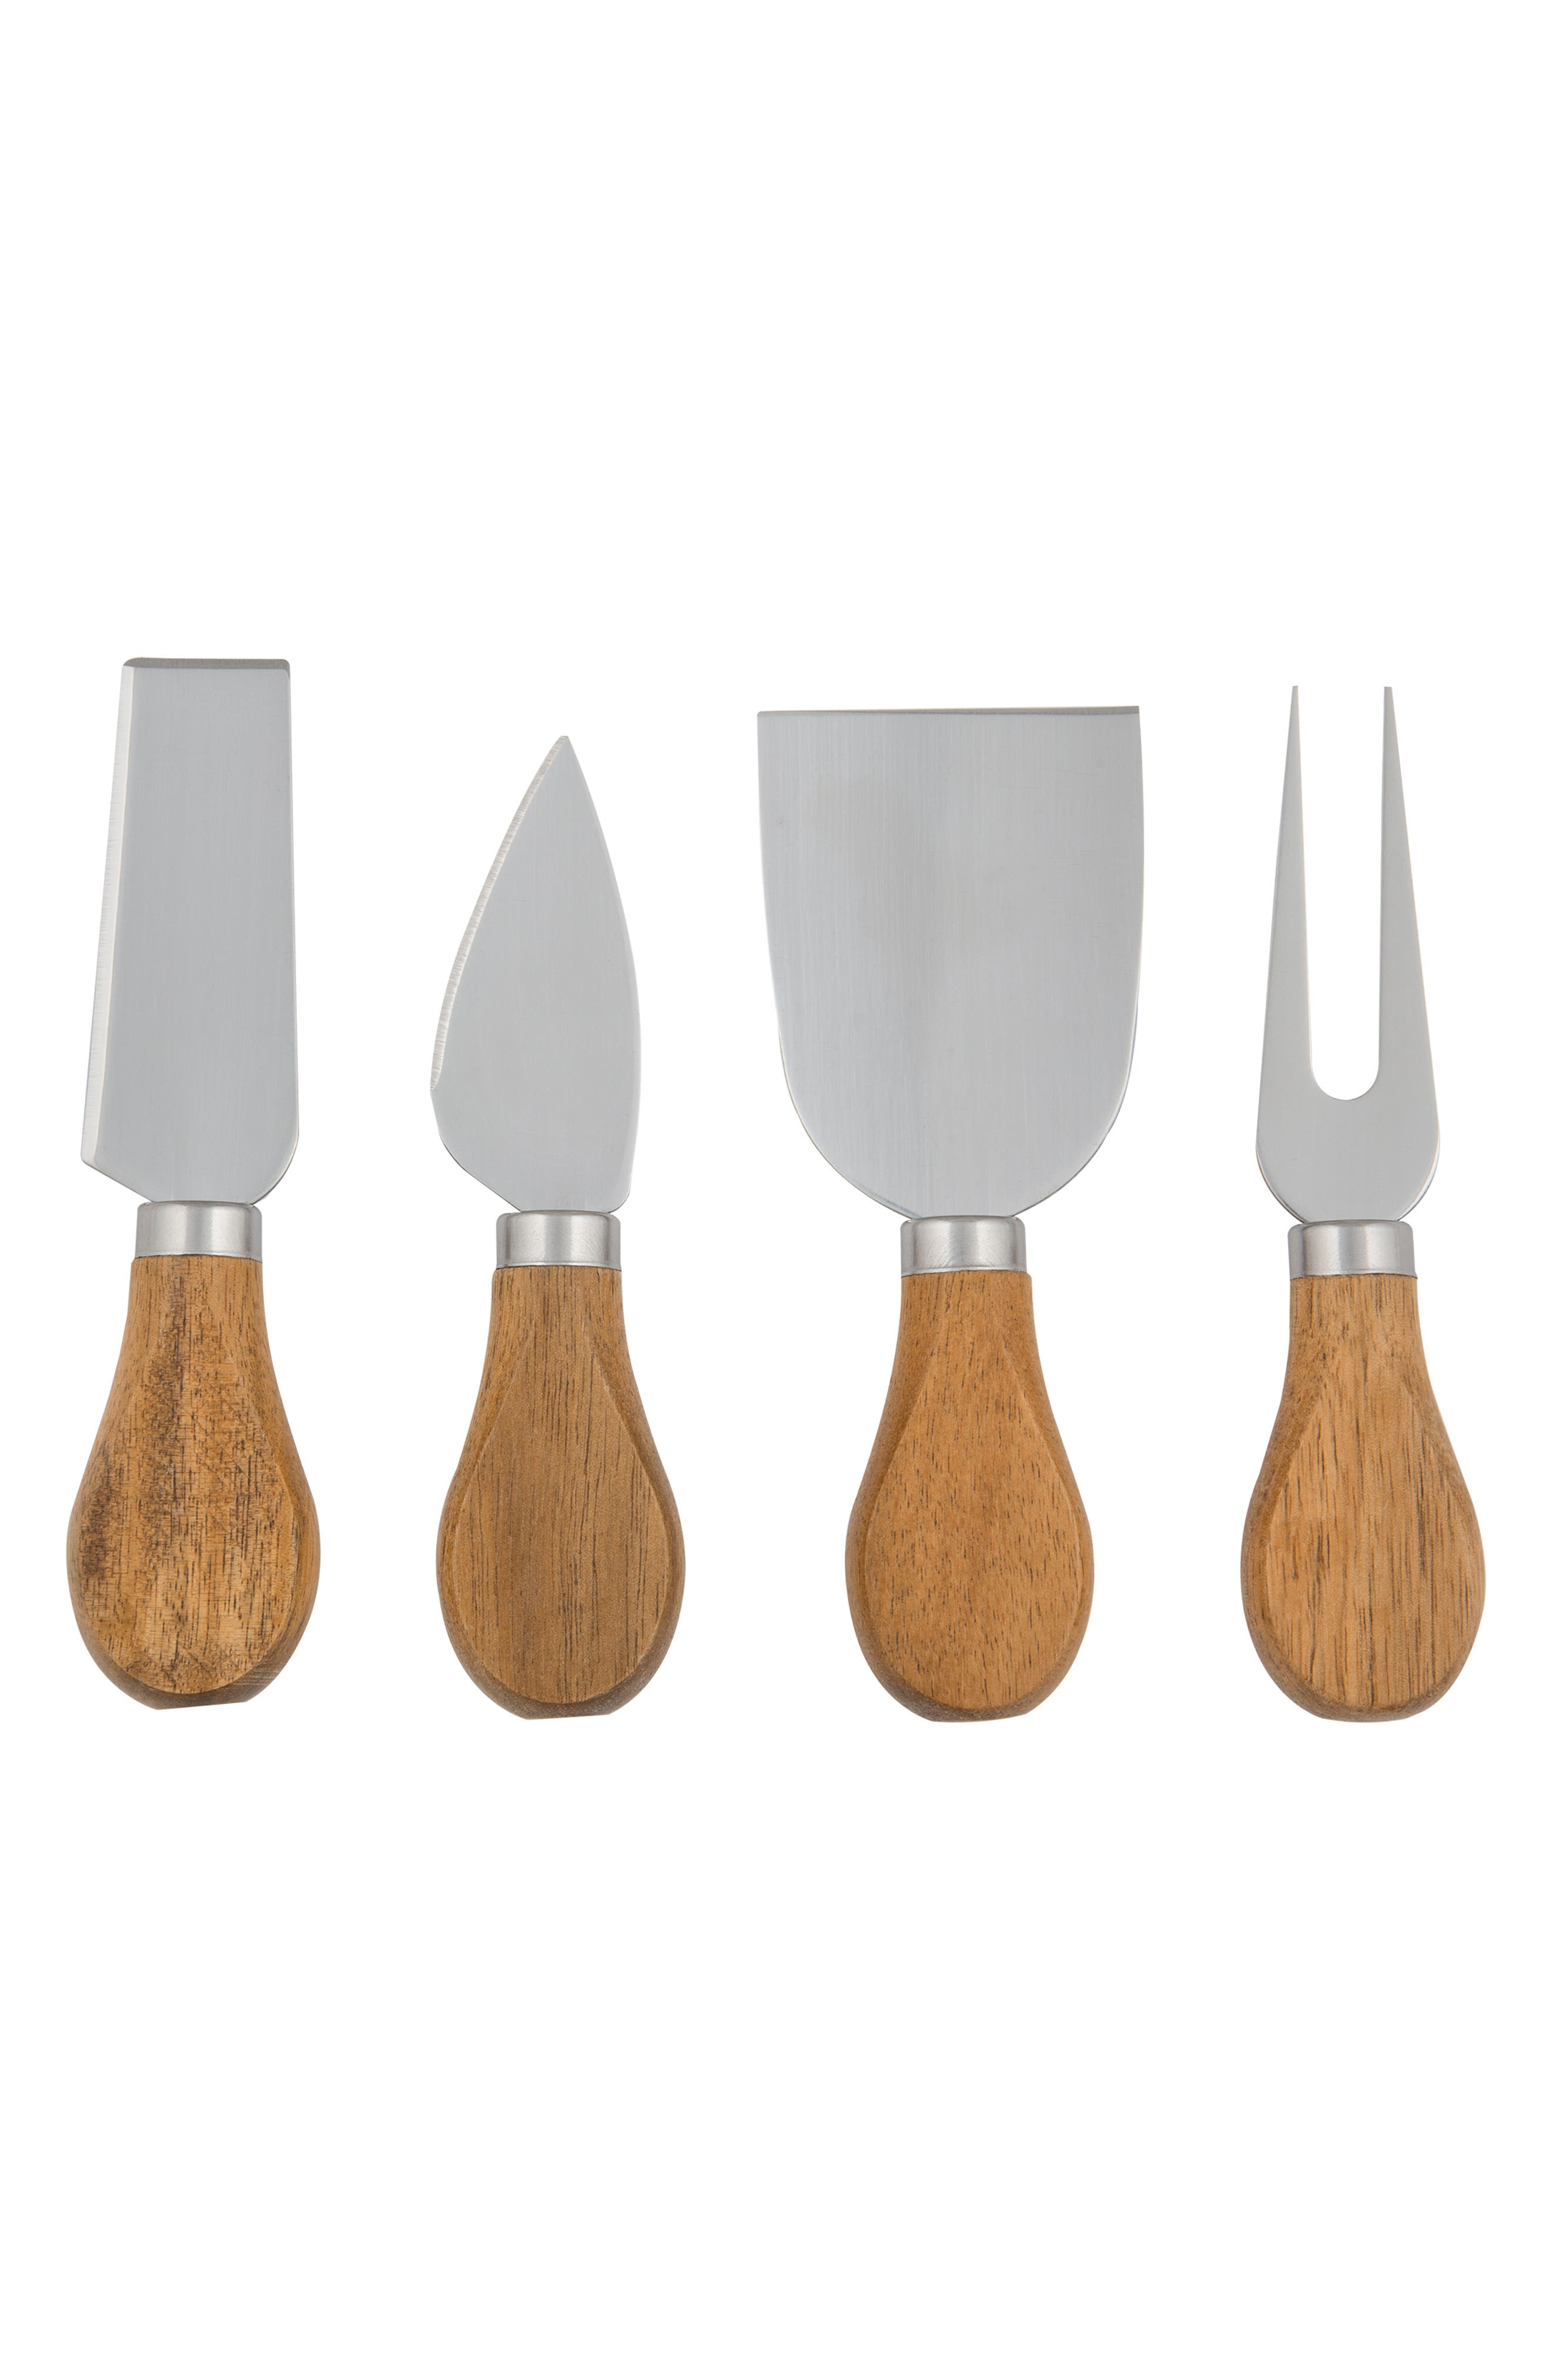 Monogram 5-Piece Cheese Board & Utensil Set,                             Alternate thumbnail 4, color,                             BROWN